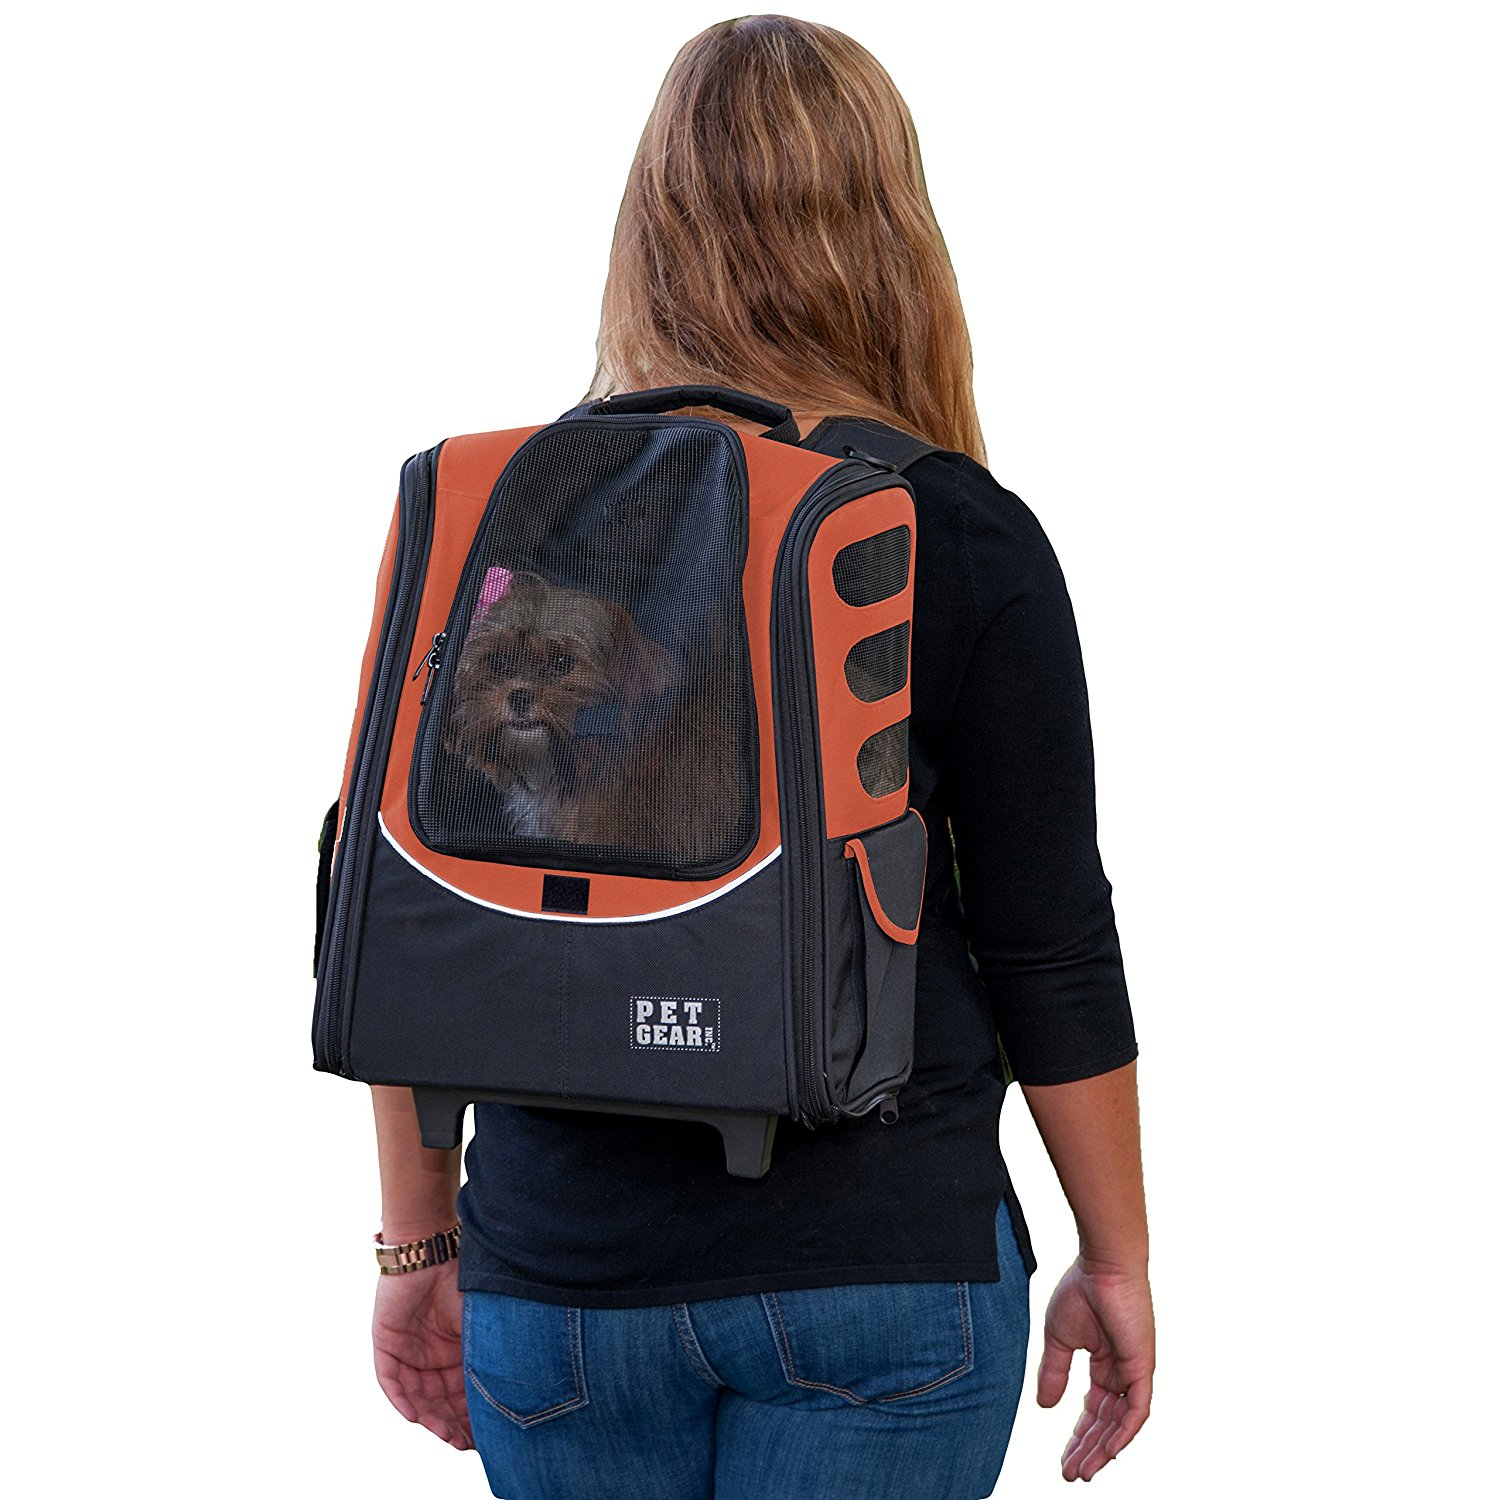 I-GO2 Escort Roller Backpack for cats and dogs, Copper, Five products in one; carrier, car seat, backpack, roller bag and tote By Pet Gear